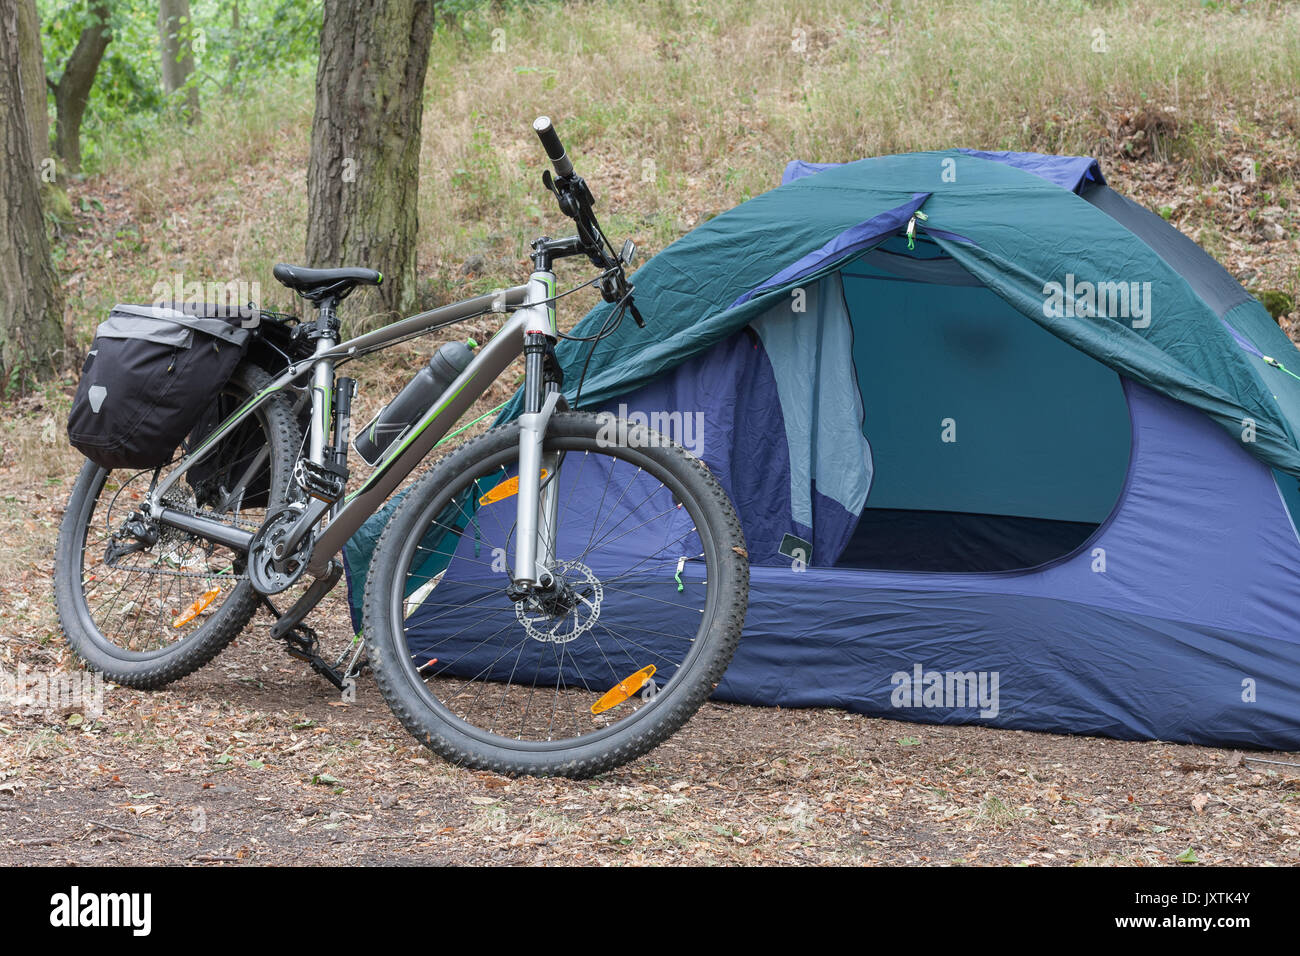 Mountain bike with saddlebags in front of tent in the woods in the summer morning . & Mountain bike with saddlebags in front of tent in the woods in the ...